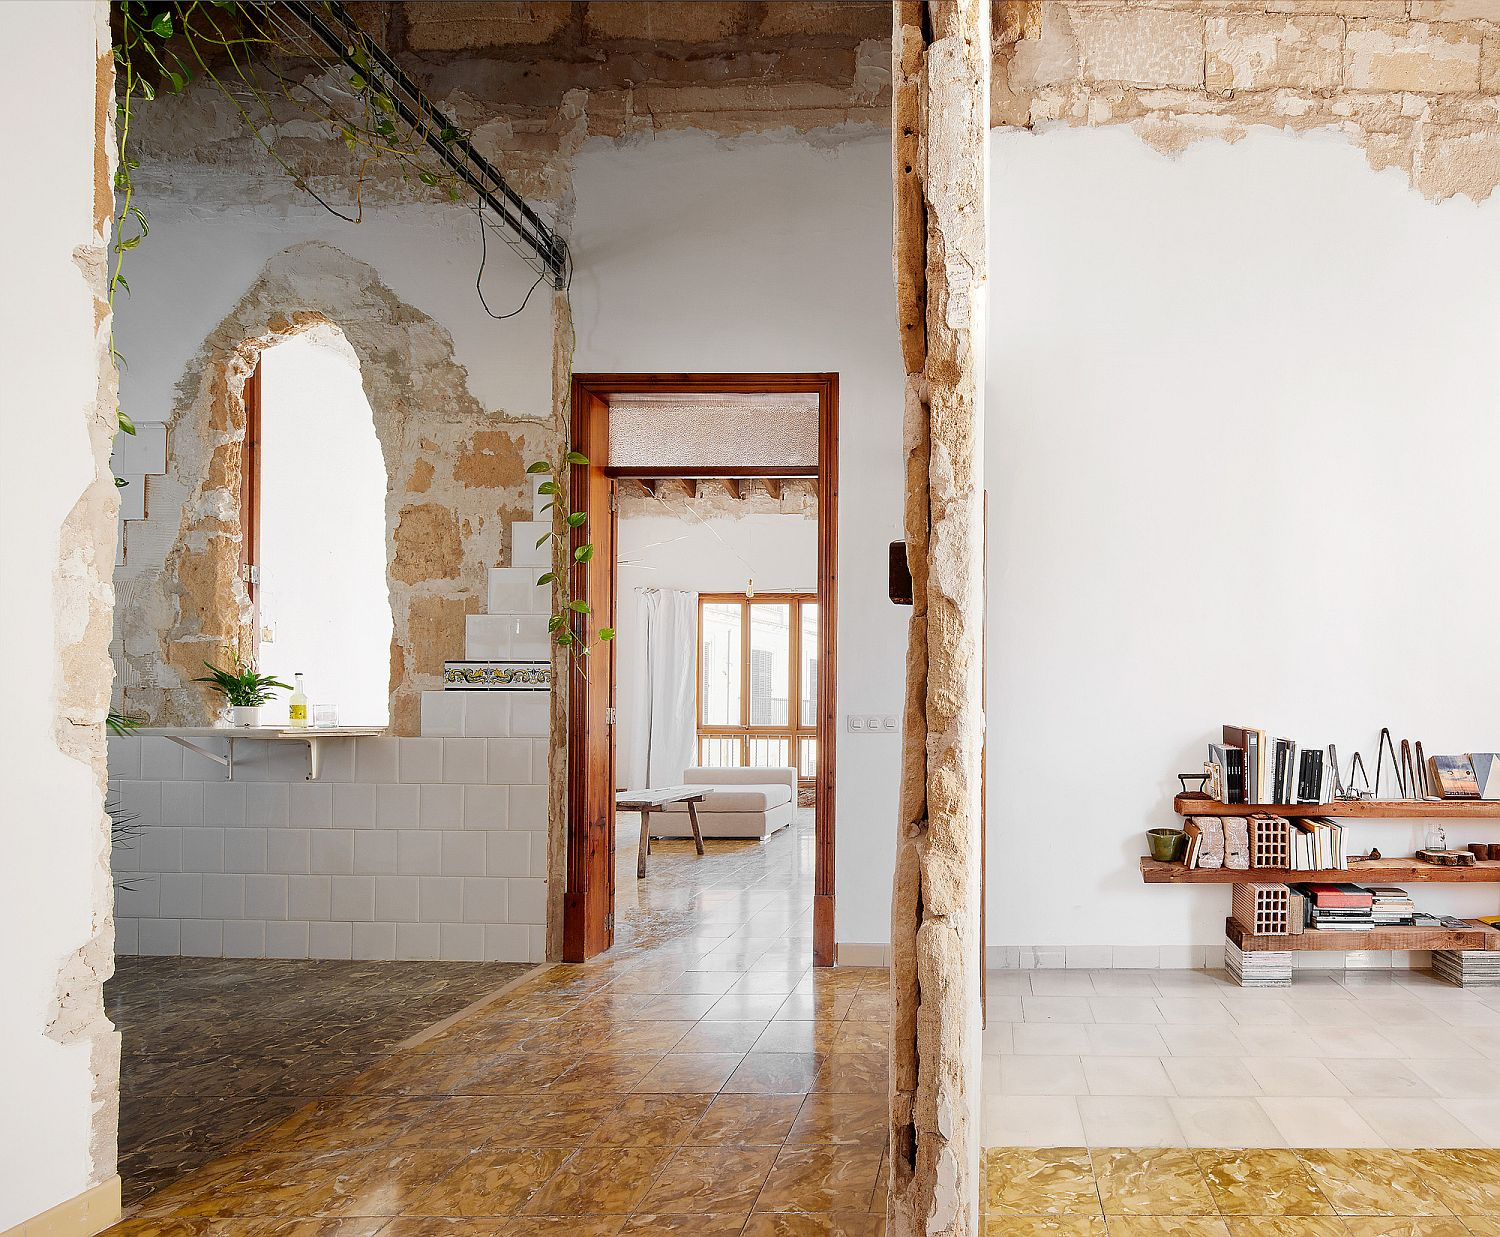 Revamped interior is a careful mixture of old, exposed elements and modern finishes